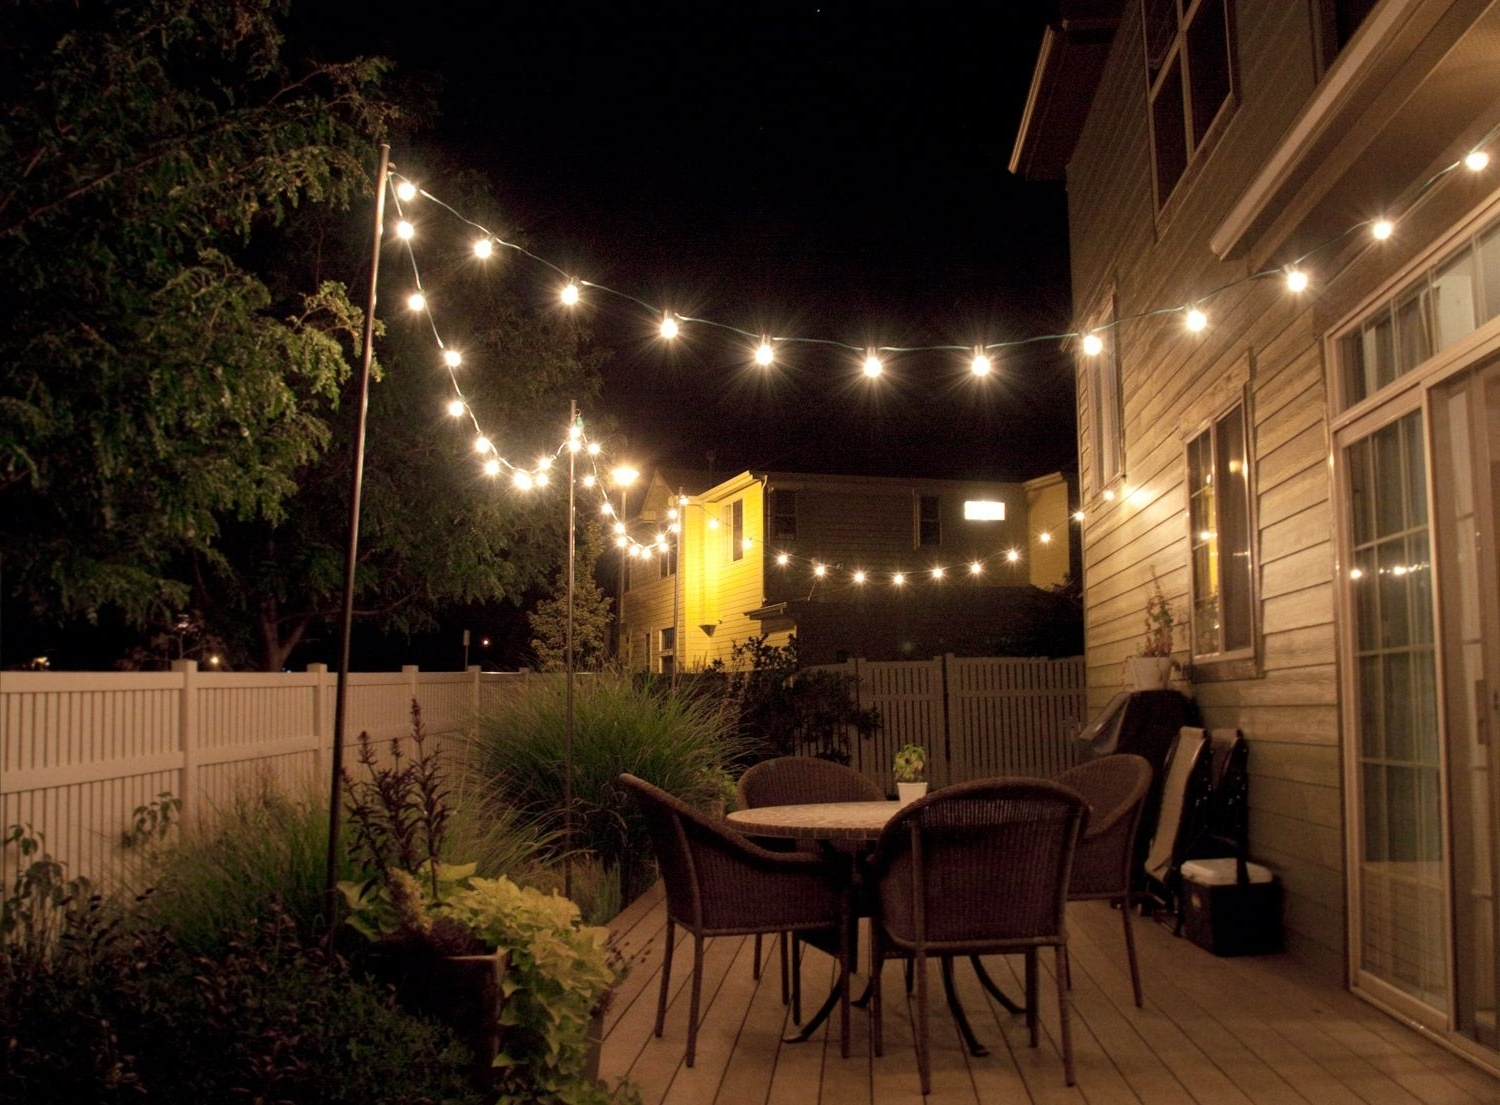 Most Current How To Make Inexpensive Poles To Hang String Lights On – Café Style With Regard To Solar Hanging Outdoor Patio Lights (View 1 of 20)